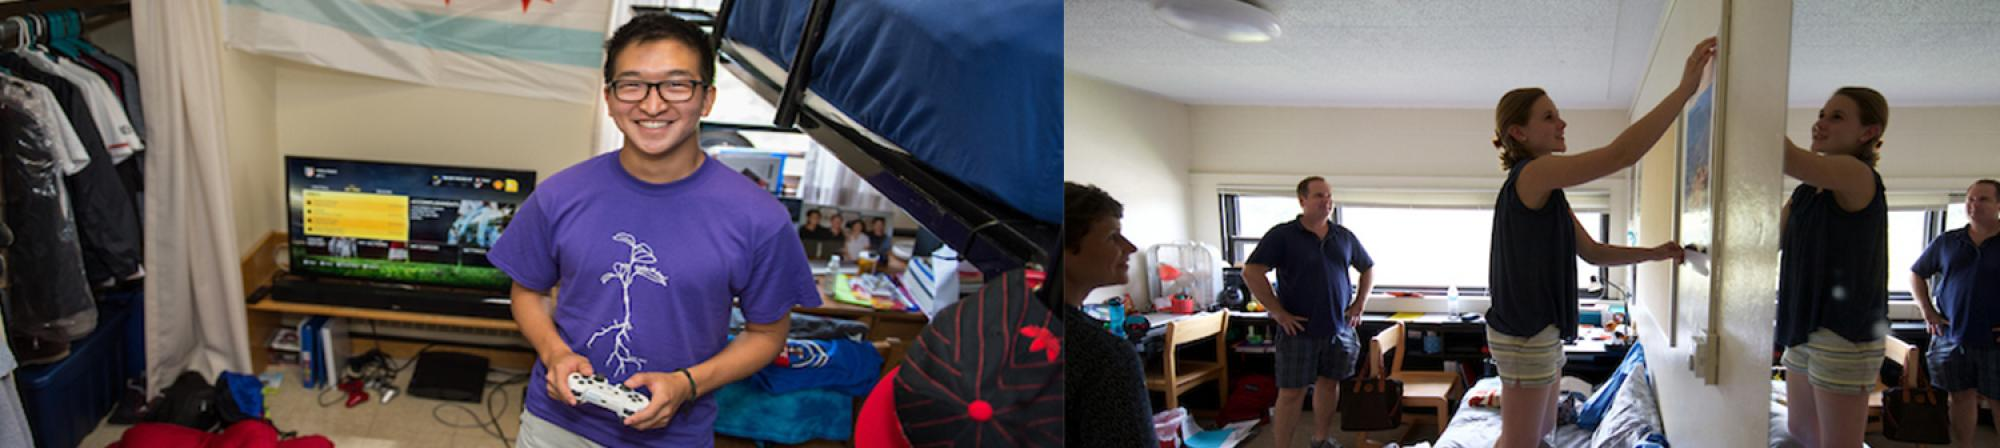 First Photo: A male student facing the camera with a game controller in his hand. Behind him is is loft bed, TV, and unpacked boxes. Photo Two: A femaile student stands on her bed hanging a poster, behind her two family members watch her